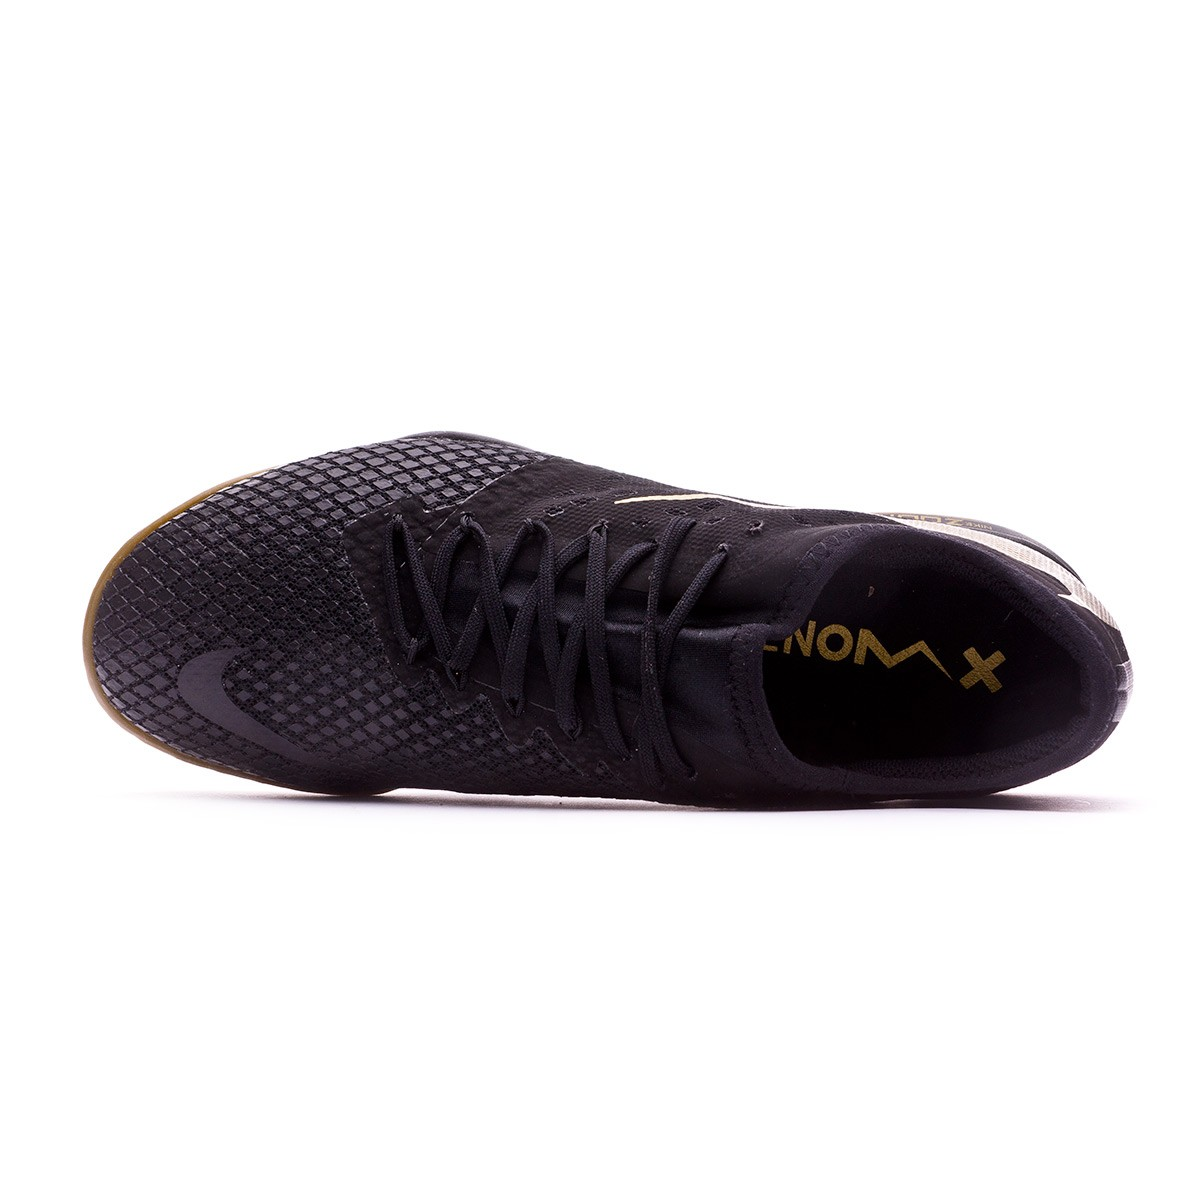 f7832e95ac15 Futsal Boot Nike Hypervenom Zoom PhantomX III Pro IC Black-Metallic vivid  gold - Football store Fútbol Emotion